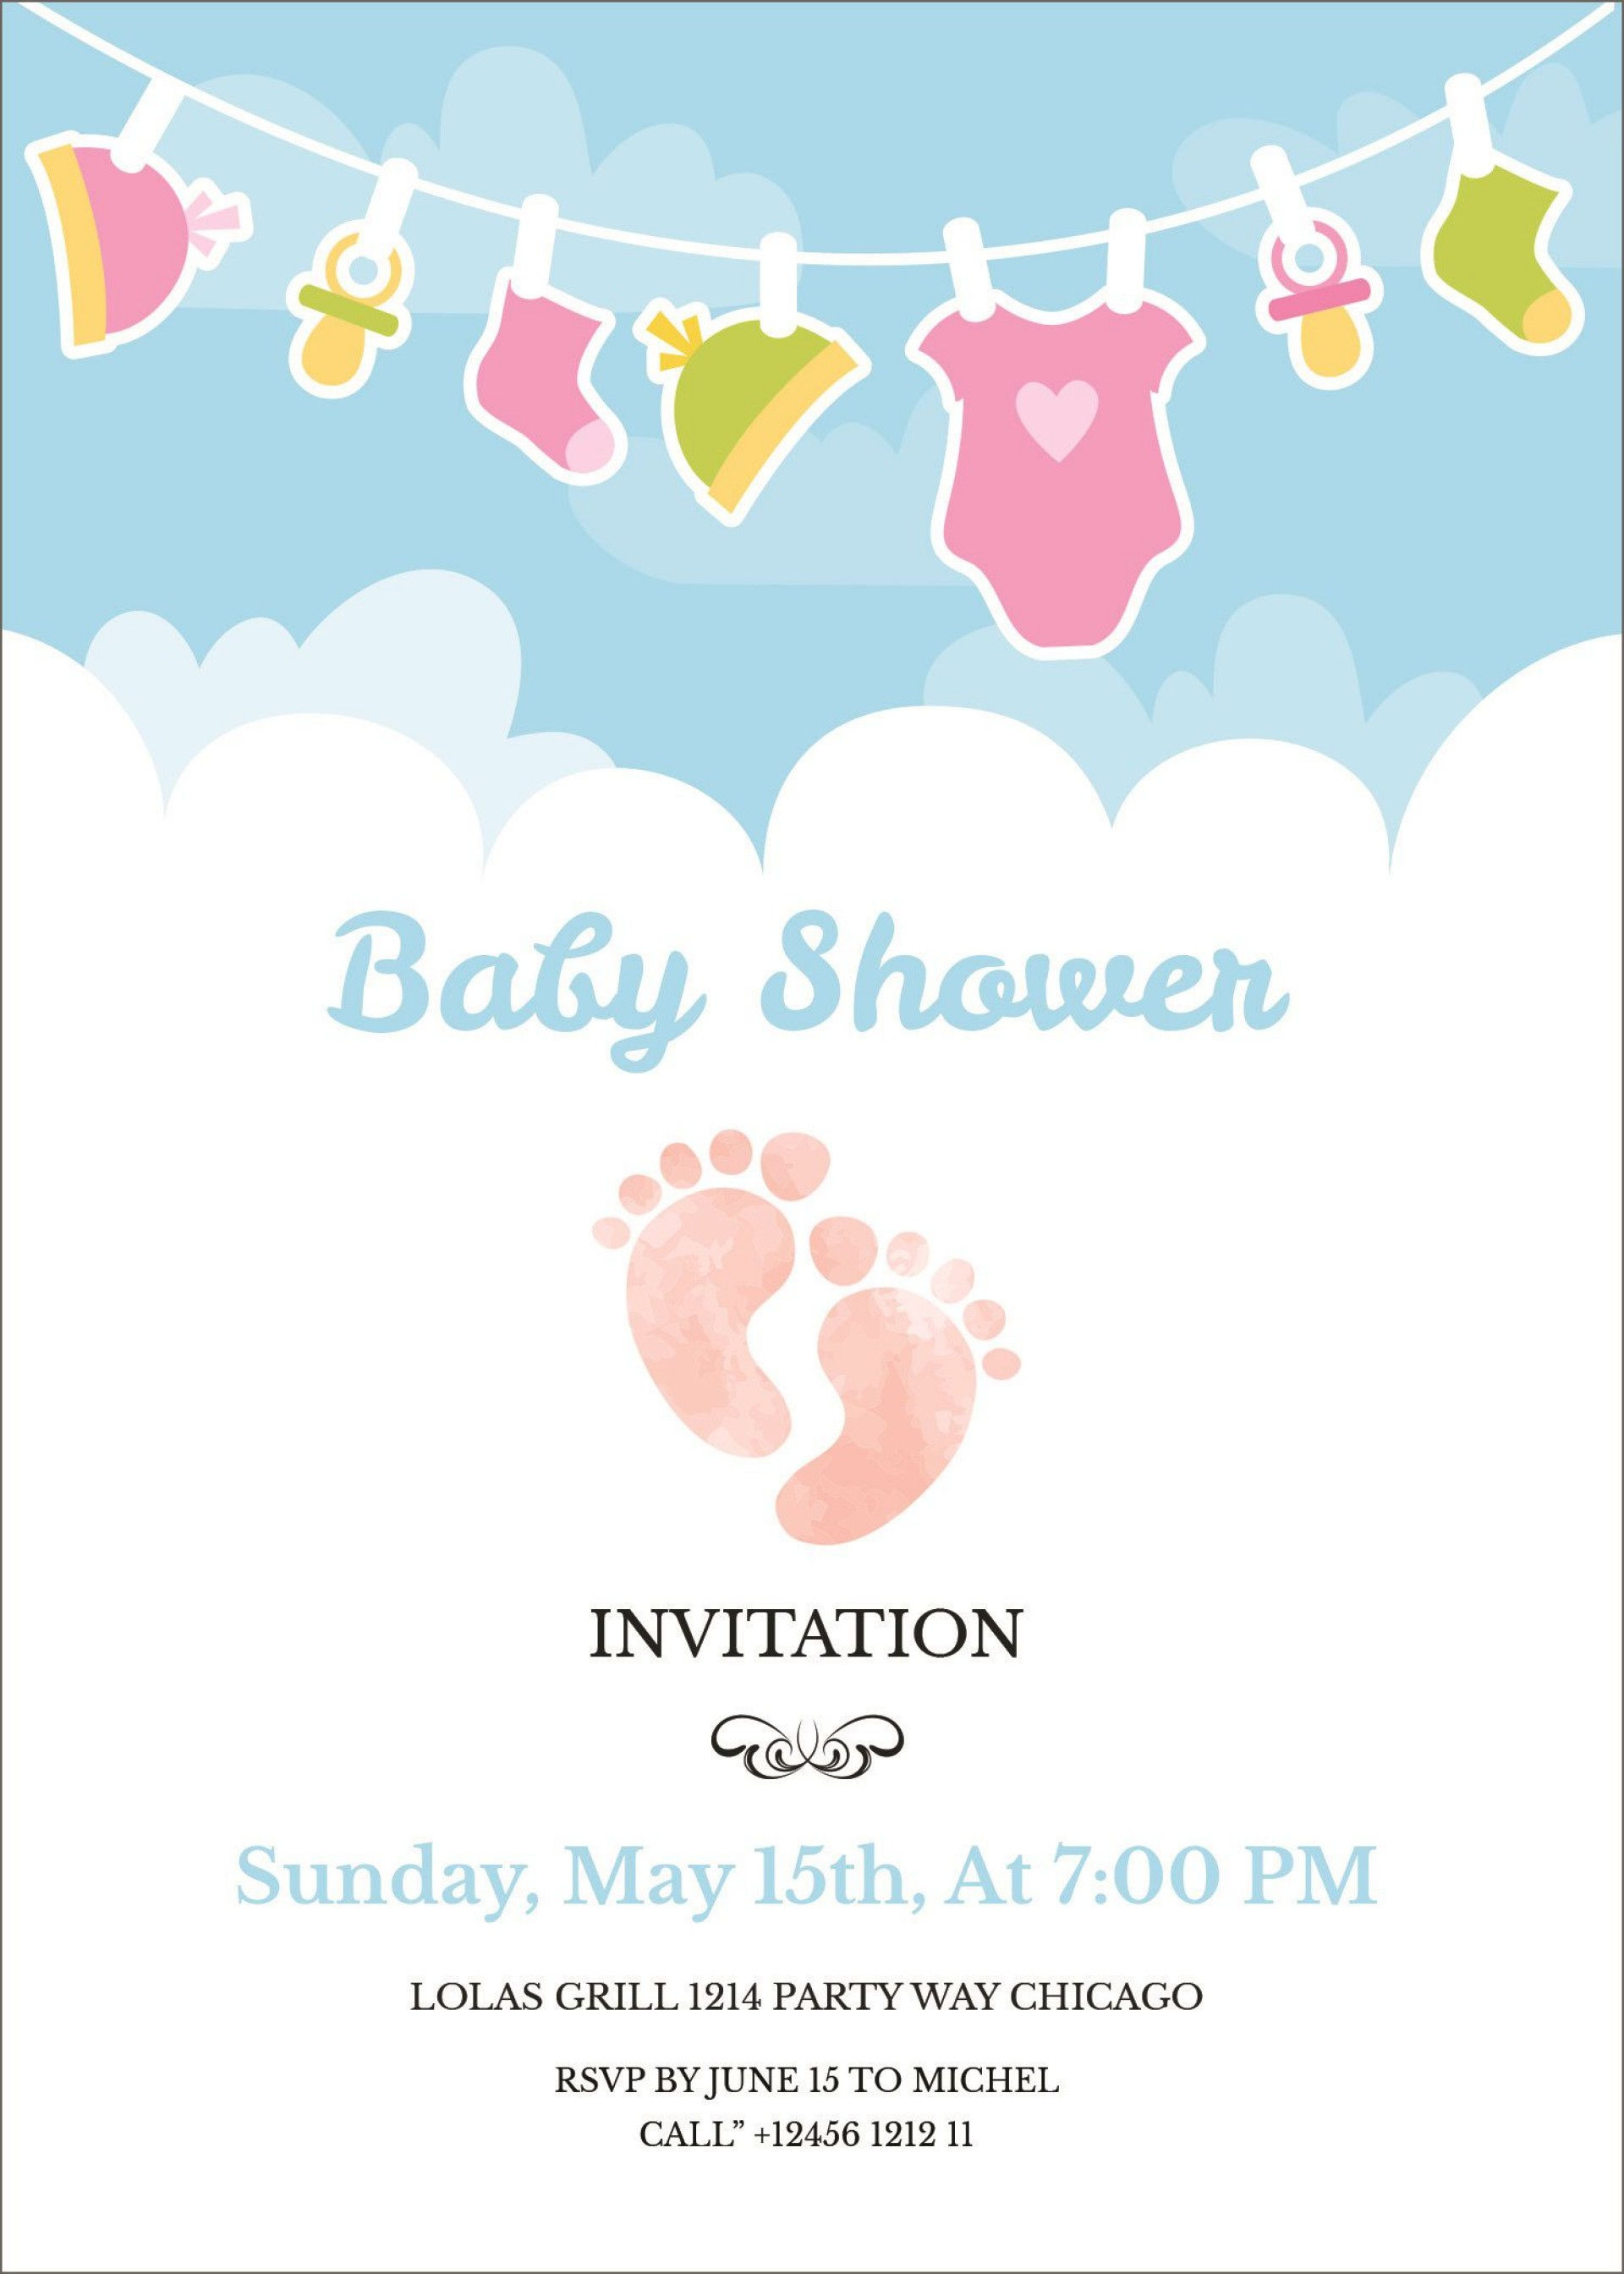 004 Awful Baby Shower Invitation Card Template Free Download Design  Indian1920